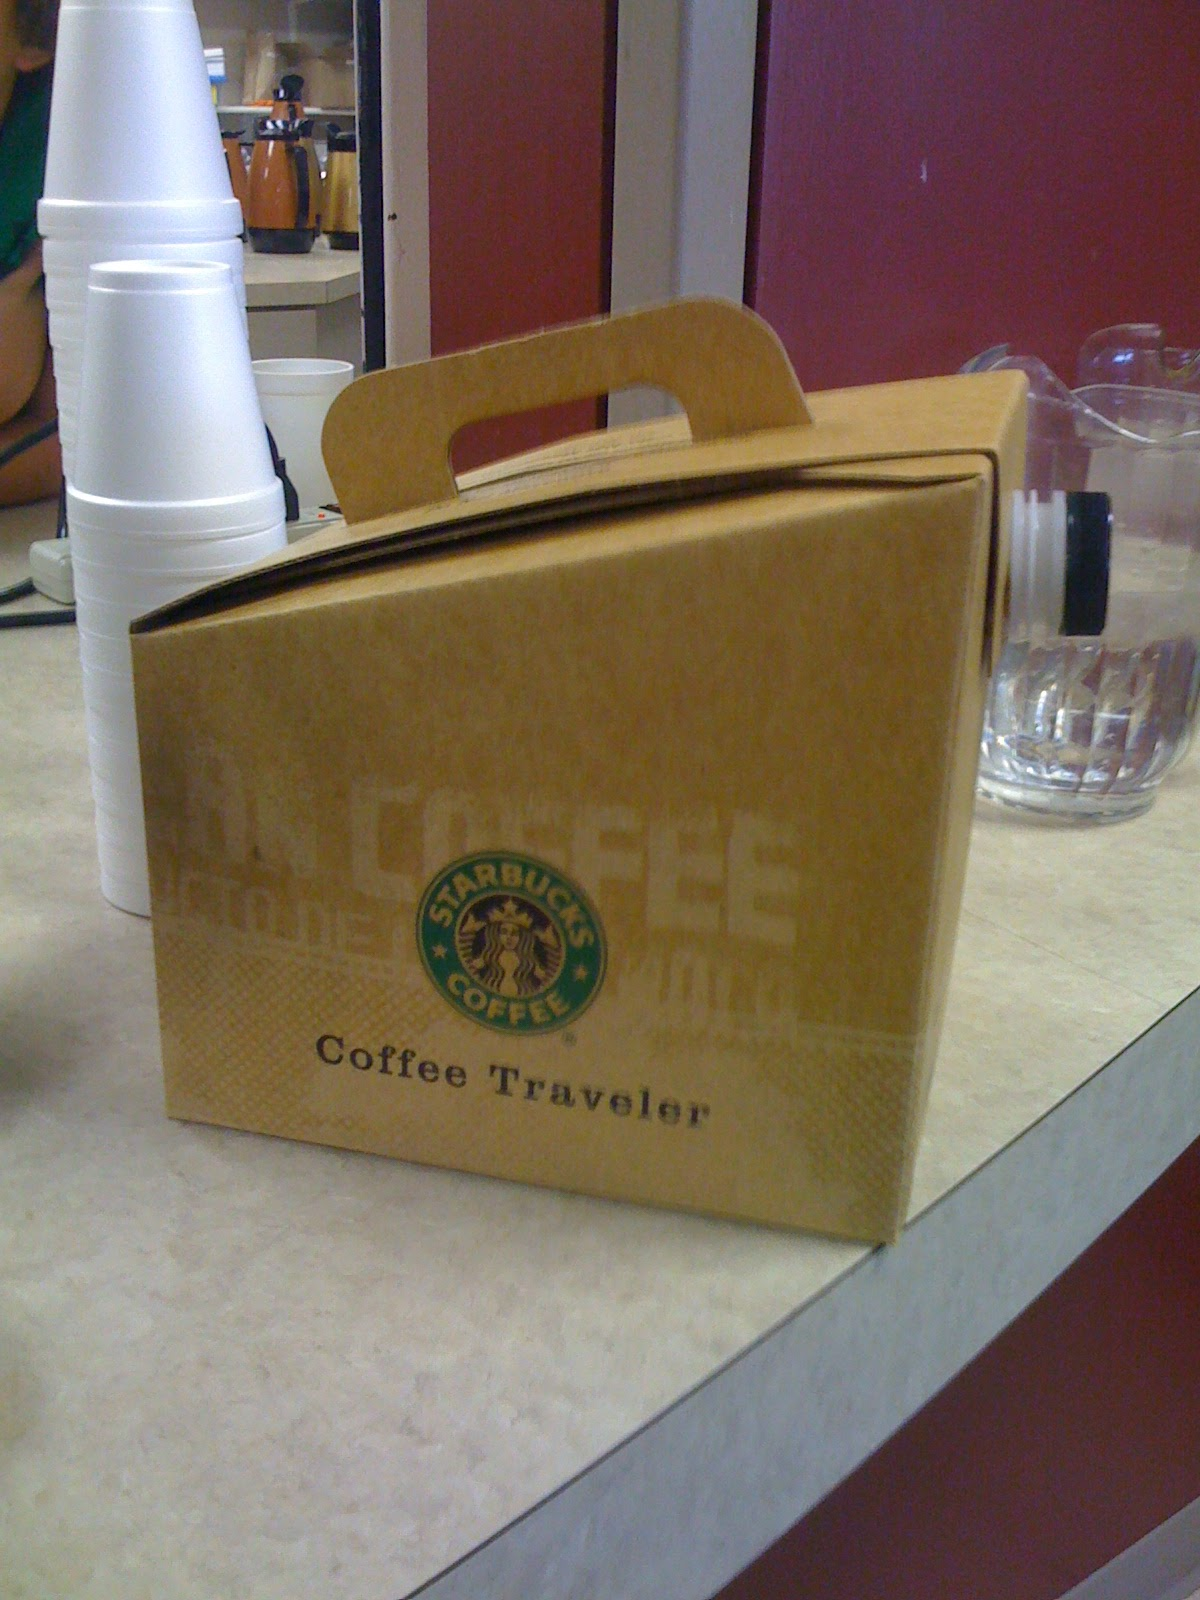 Coffee-Traveler-Starbucks-Coffee-In-a-Box